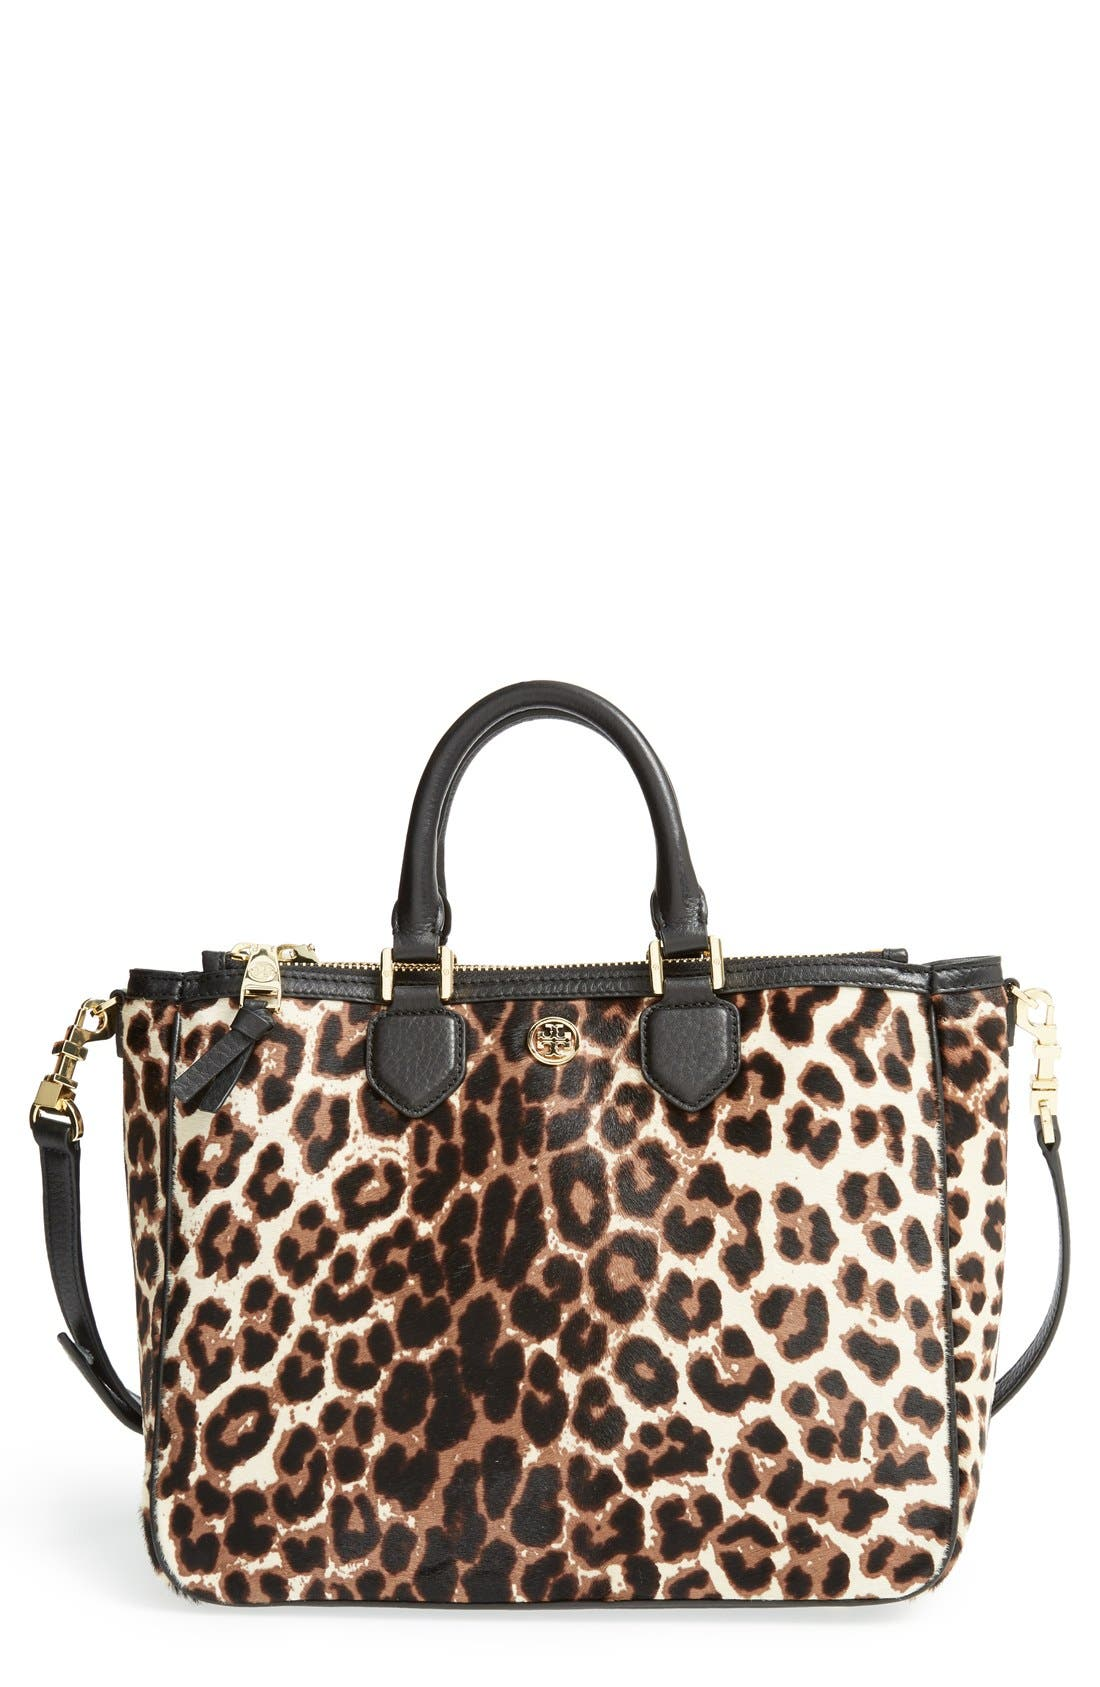 Alternate Image 1 Selected - Tory Burch 'Robinson' Genuine Calf Hair & Leather Tote